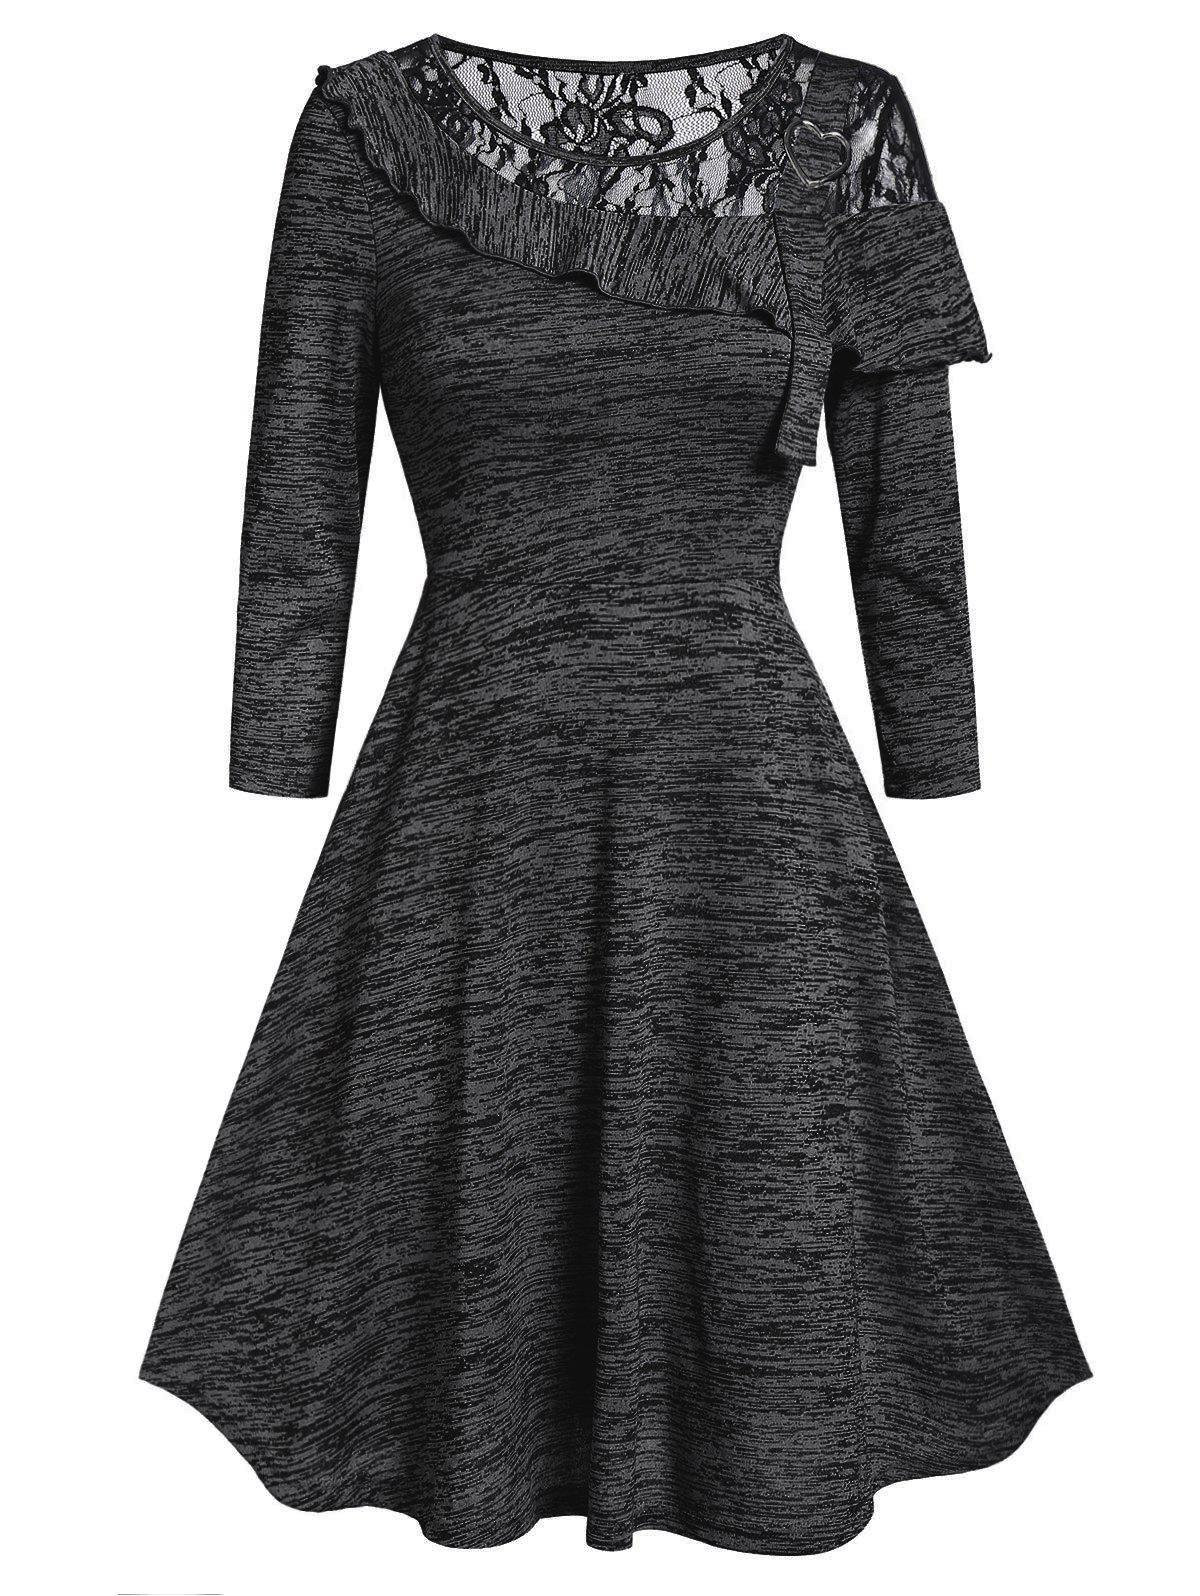 Marled Lace Insert Round Collar Fit And Flare Dress - BLACK XL